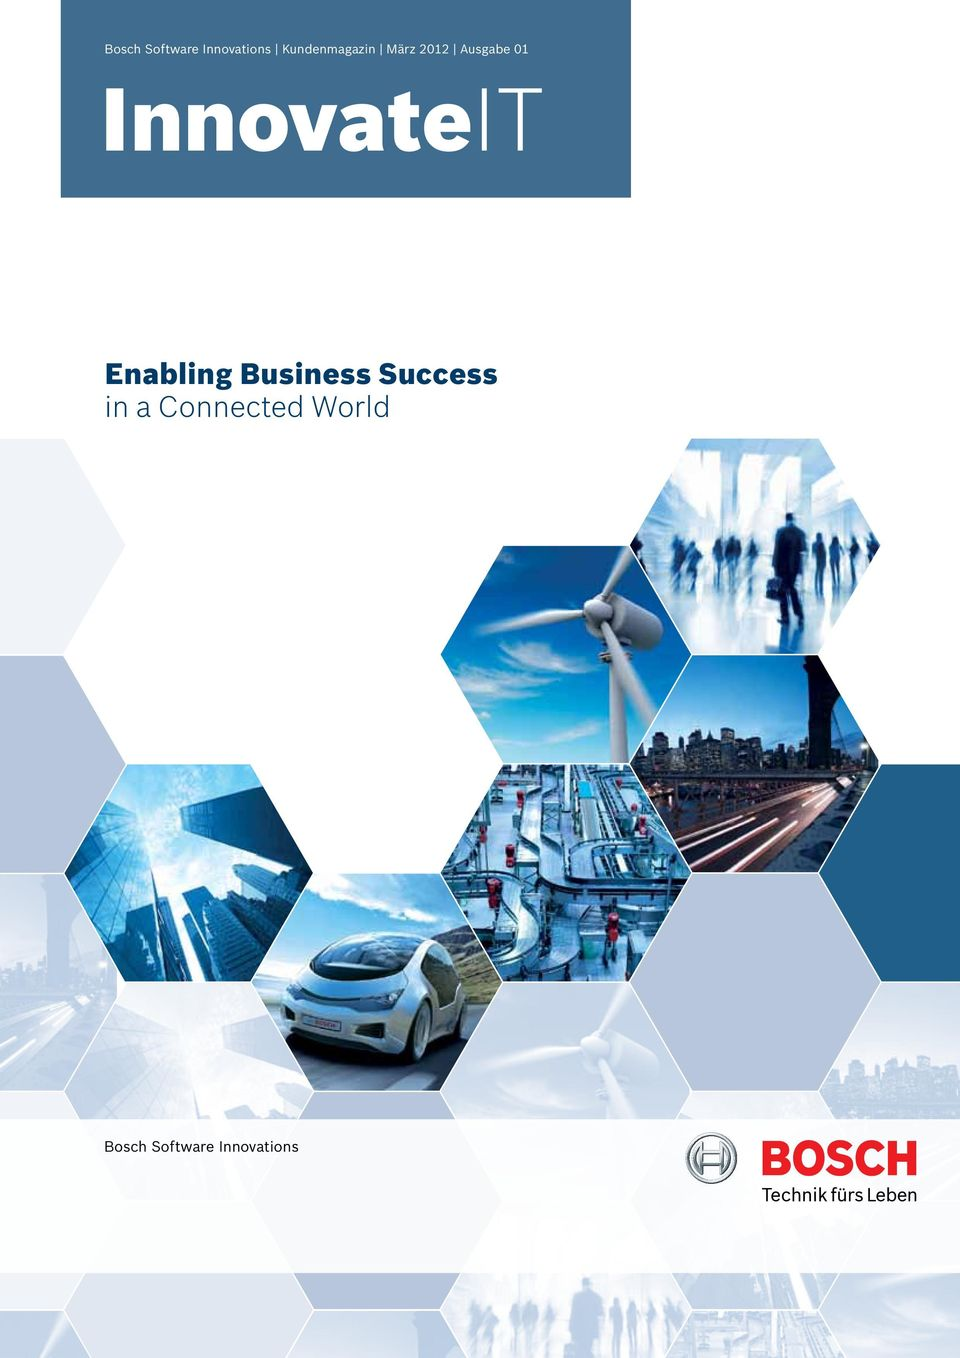 InnovateIT Enabling Business Success